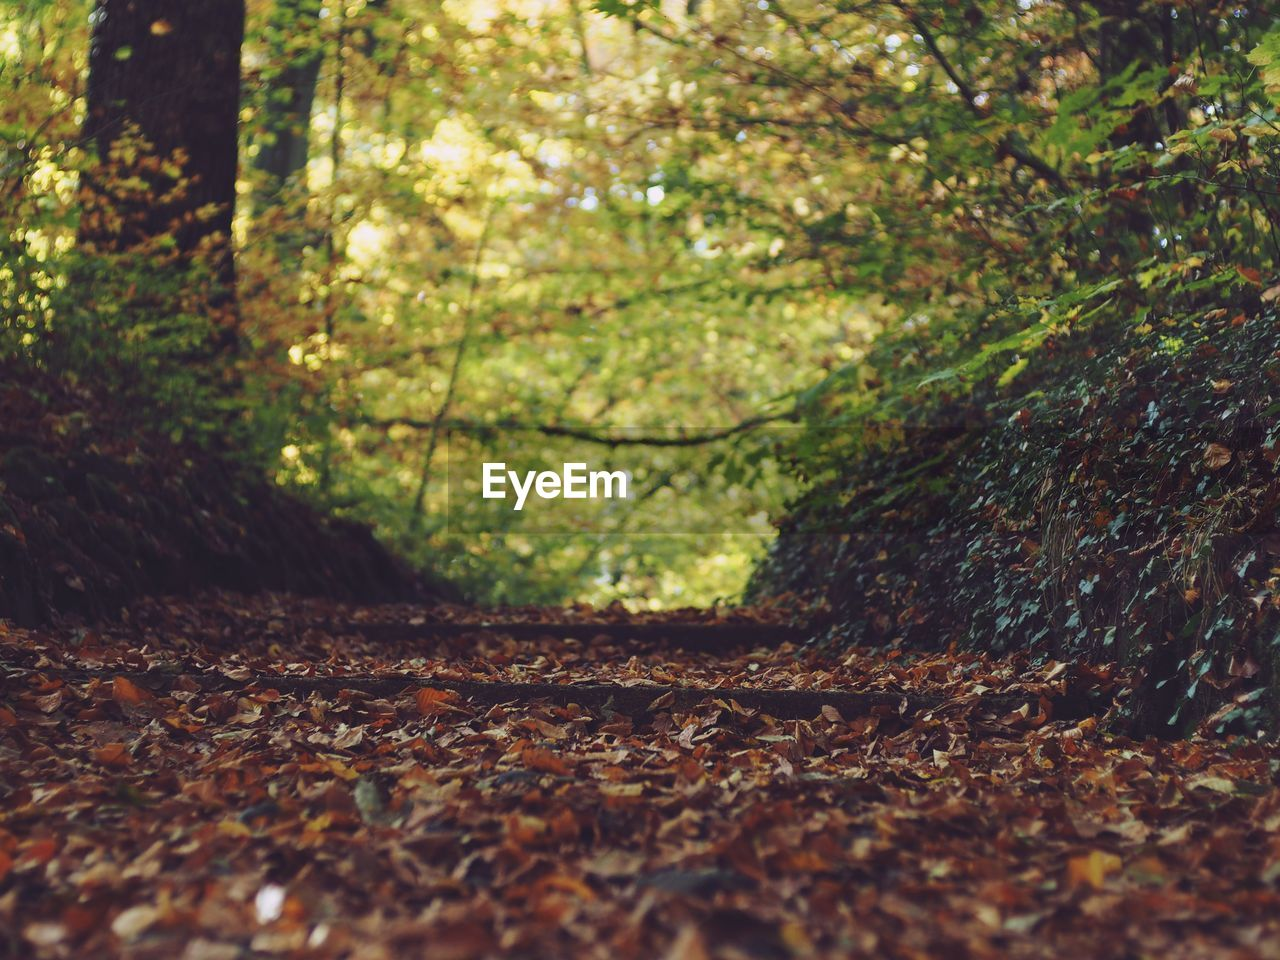 tree, plant, plant part, leaf, land, nature, autumn, day, change, forest, no people, selective focus, tranquility, growth, beauty in nature, outdoors, field, falling, branch, tree trunk, leaves, surface level